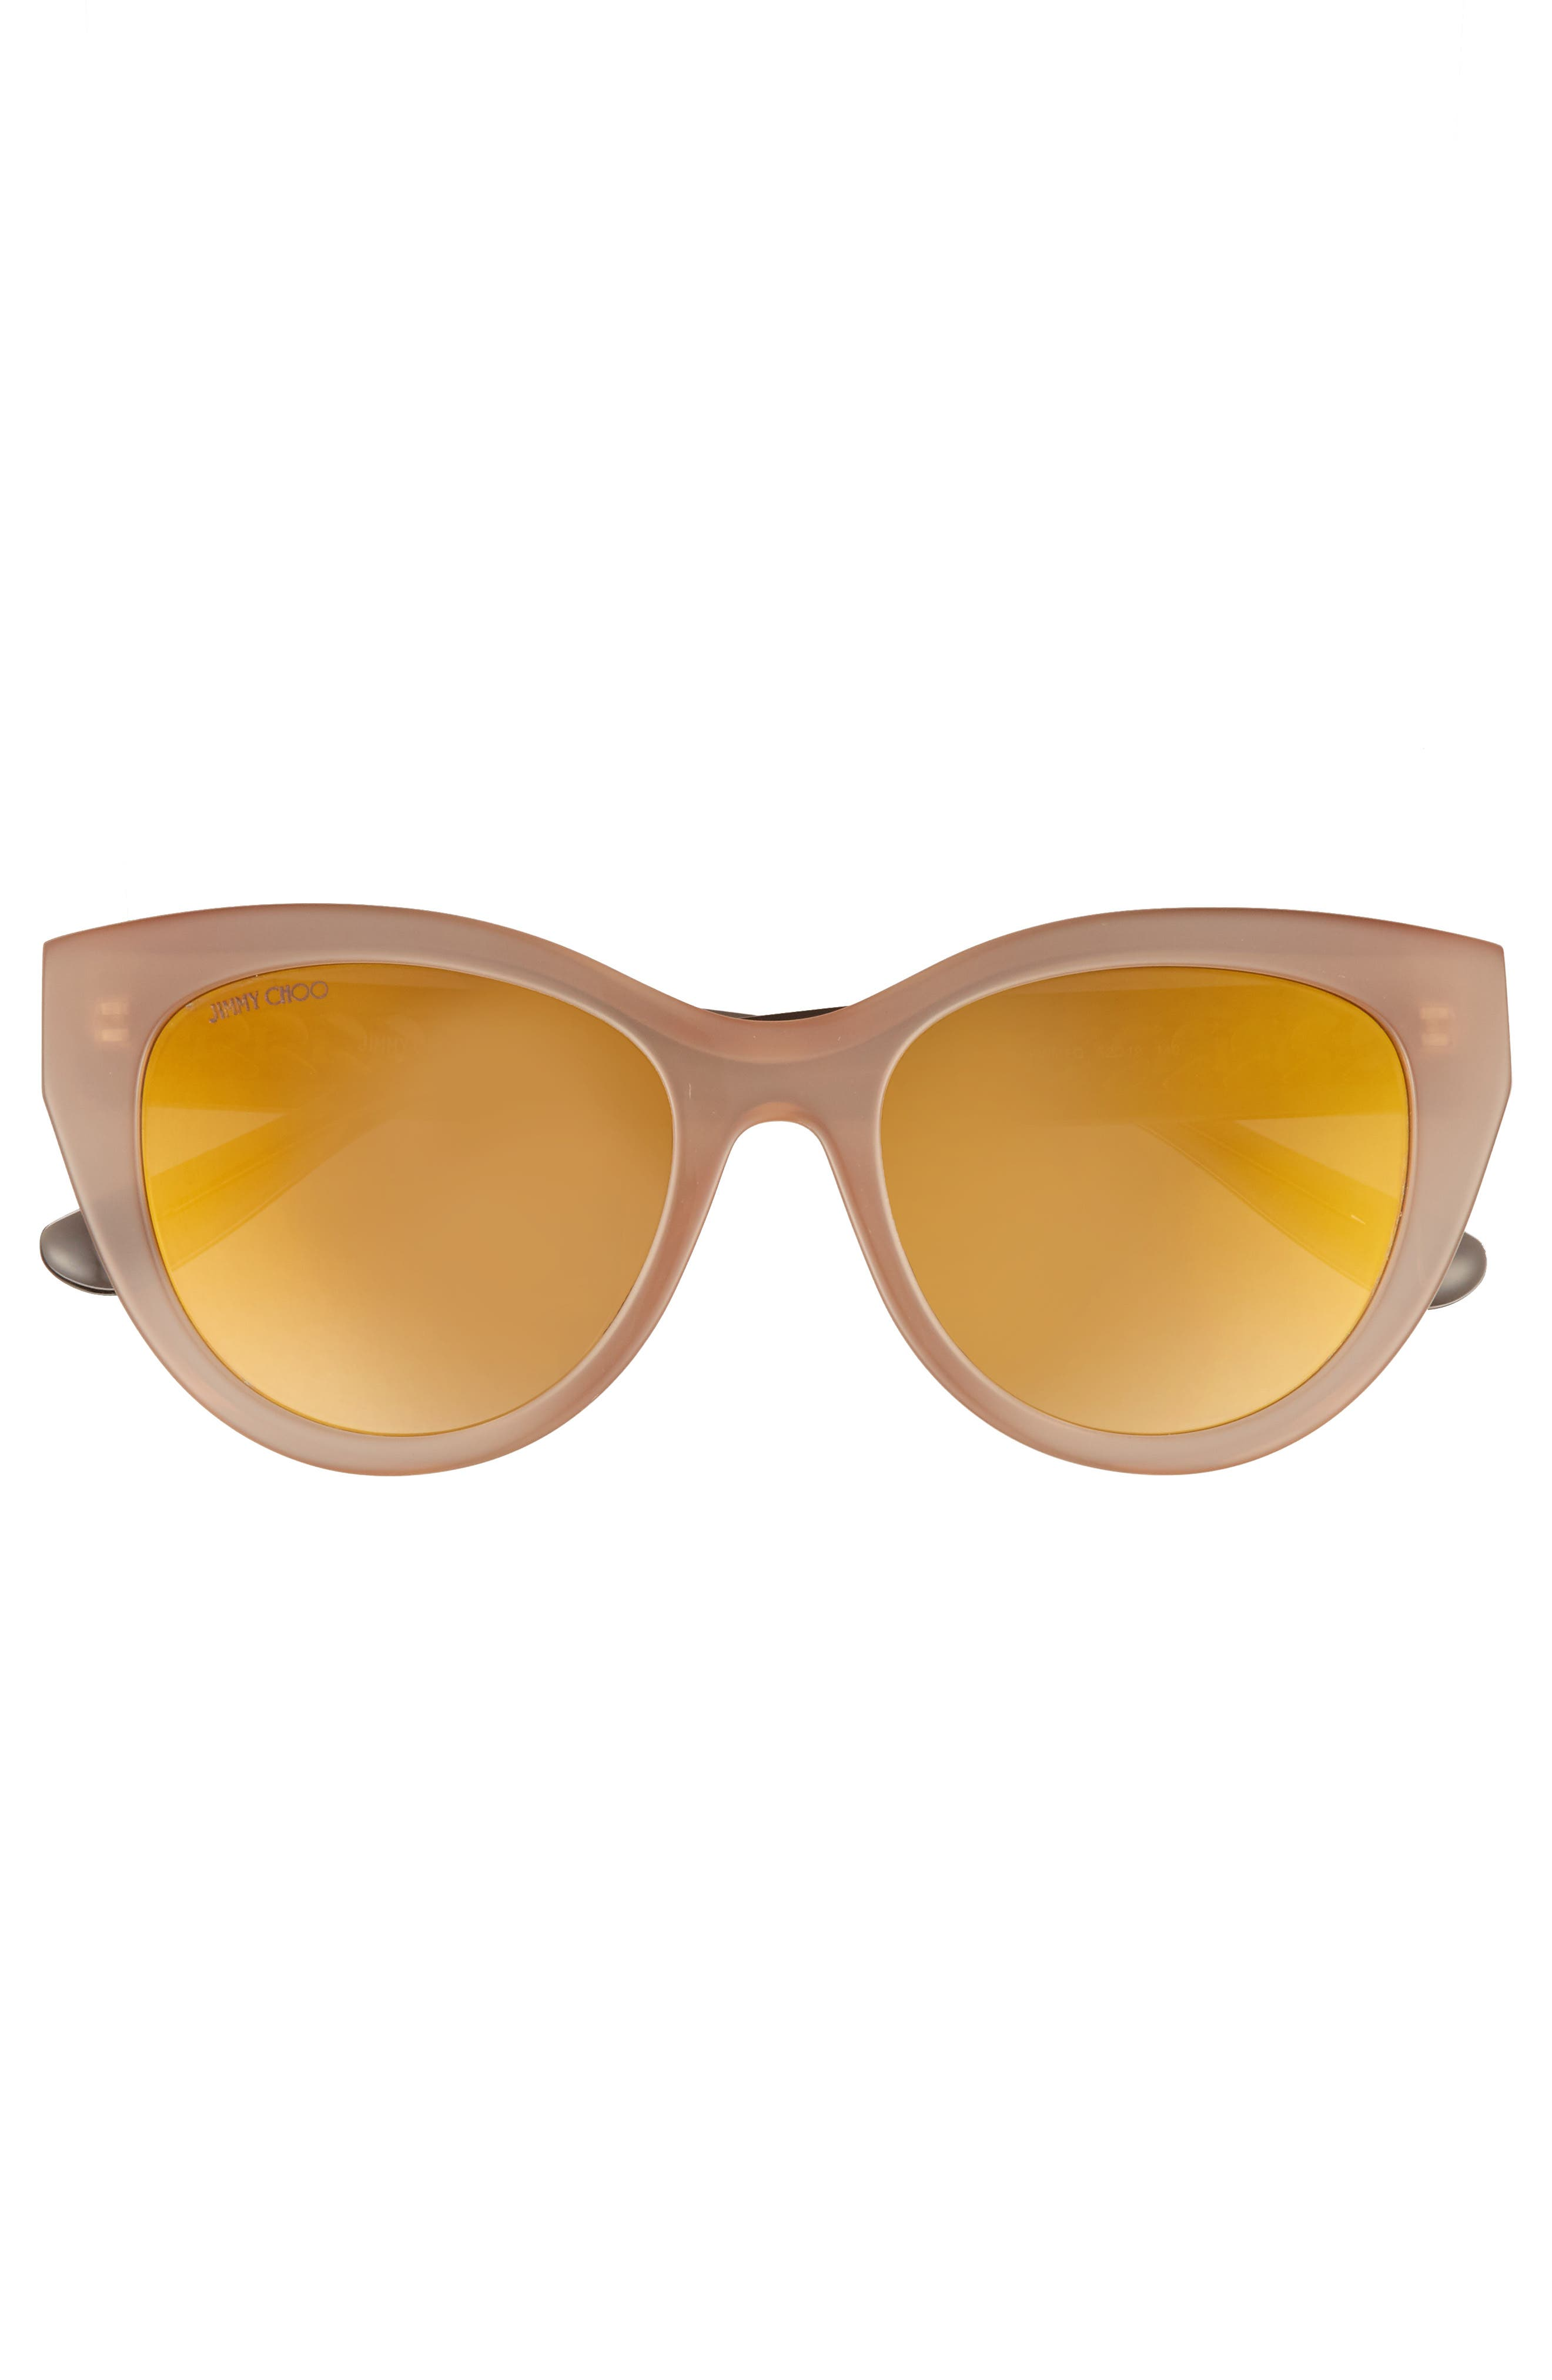 Chana 52mm Gradient Sunglasses,                             Alternate thumbnail 3, color,                             Nude